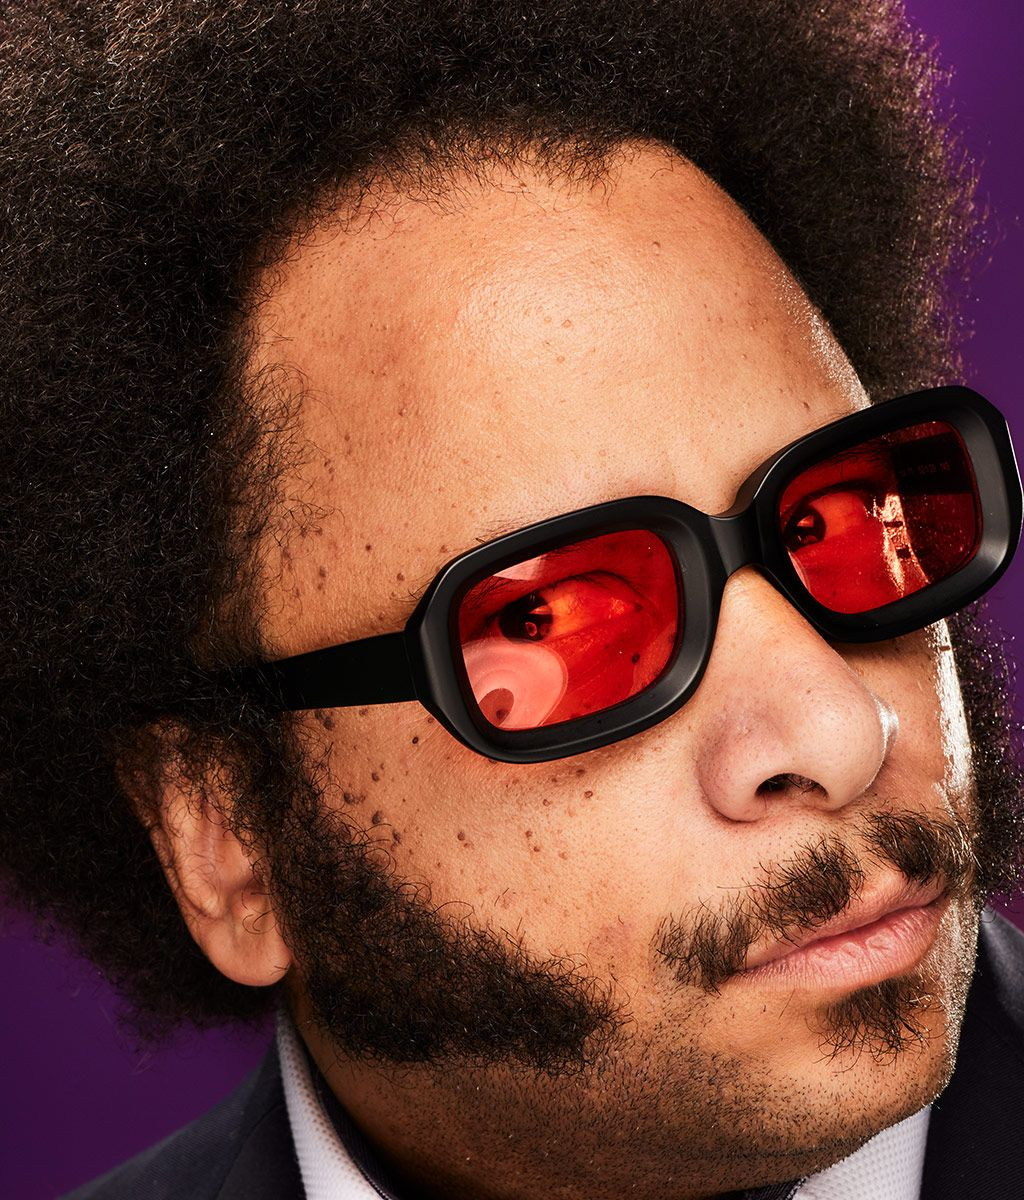 boots riley profile sorry to bother you